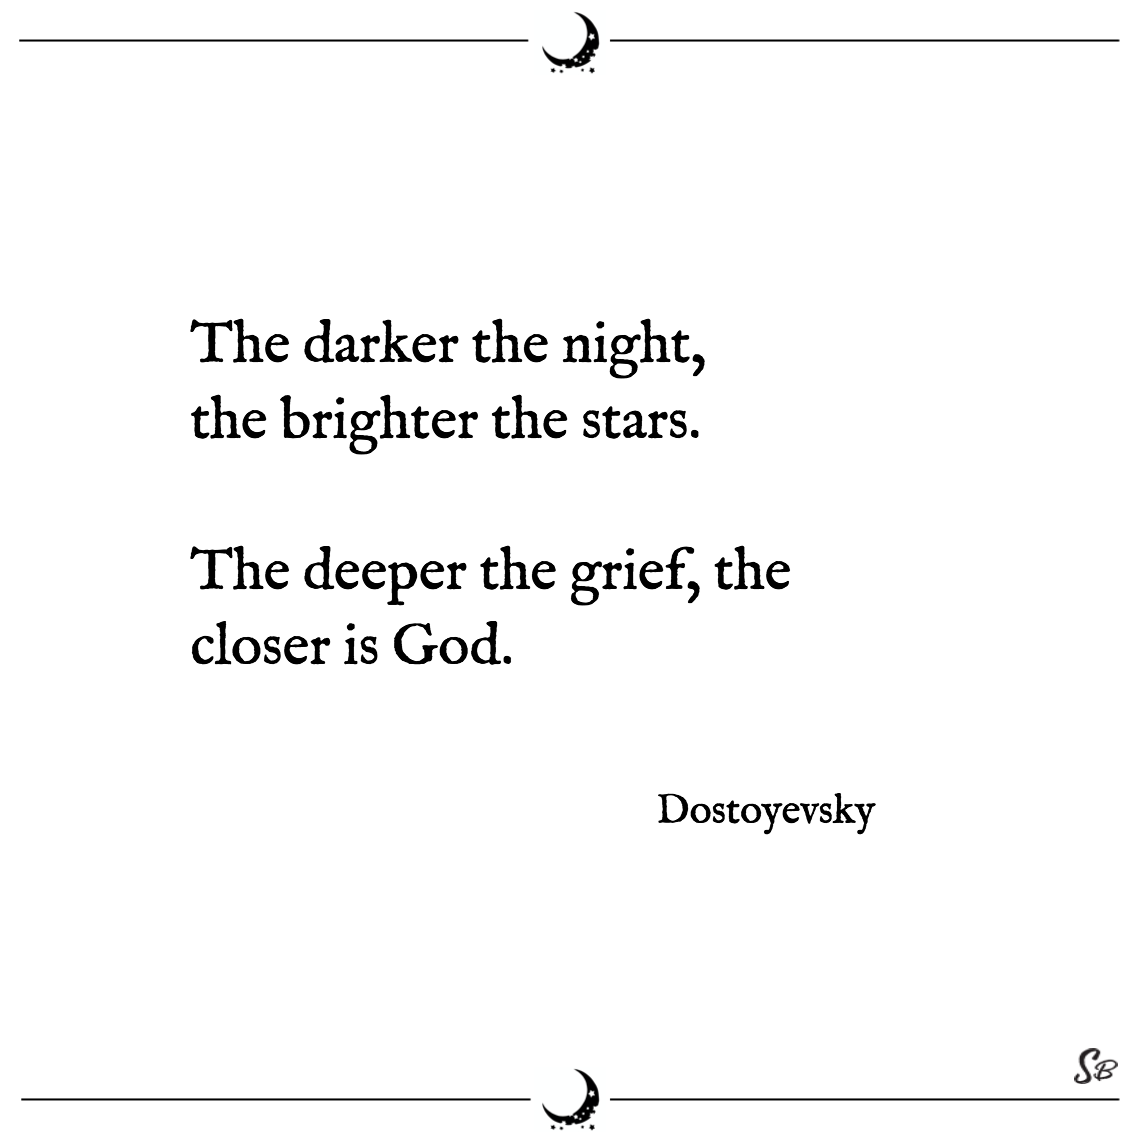 The darker the night, the brighter the stars. the deeper the grief, the closer is god. dostoyevsky